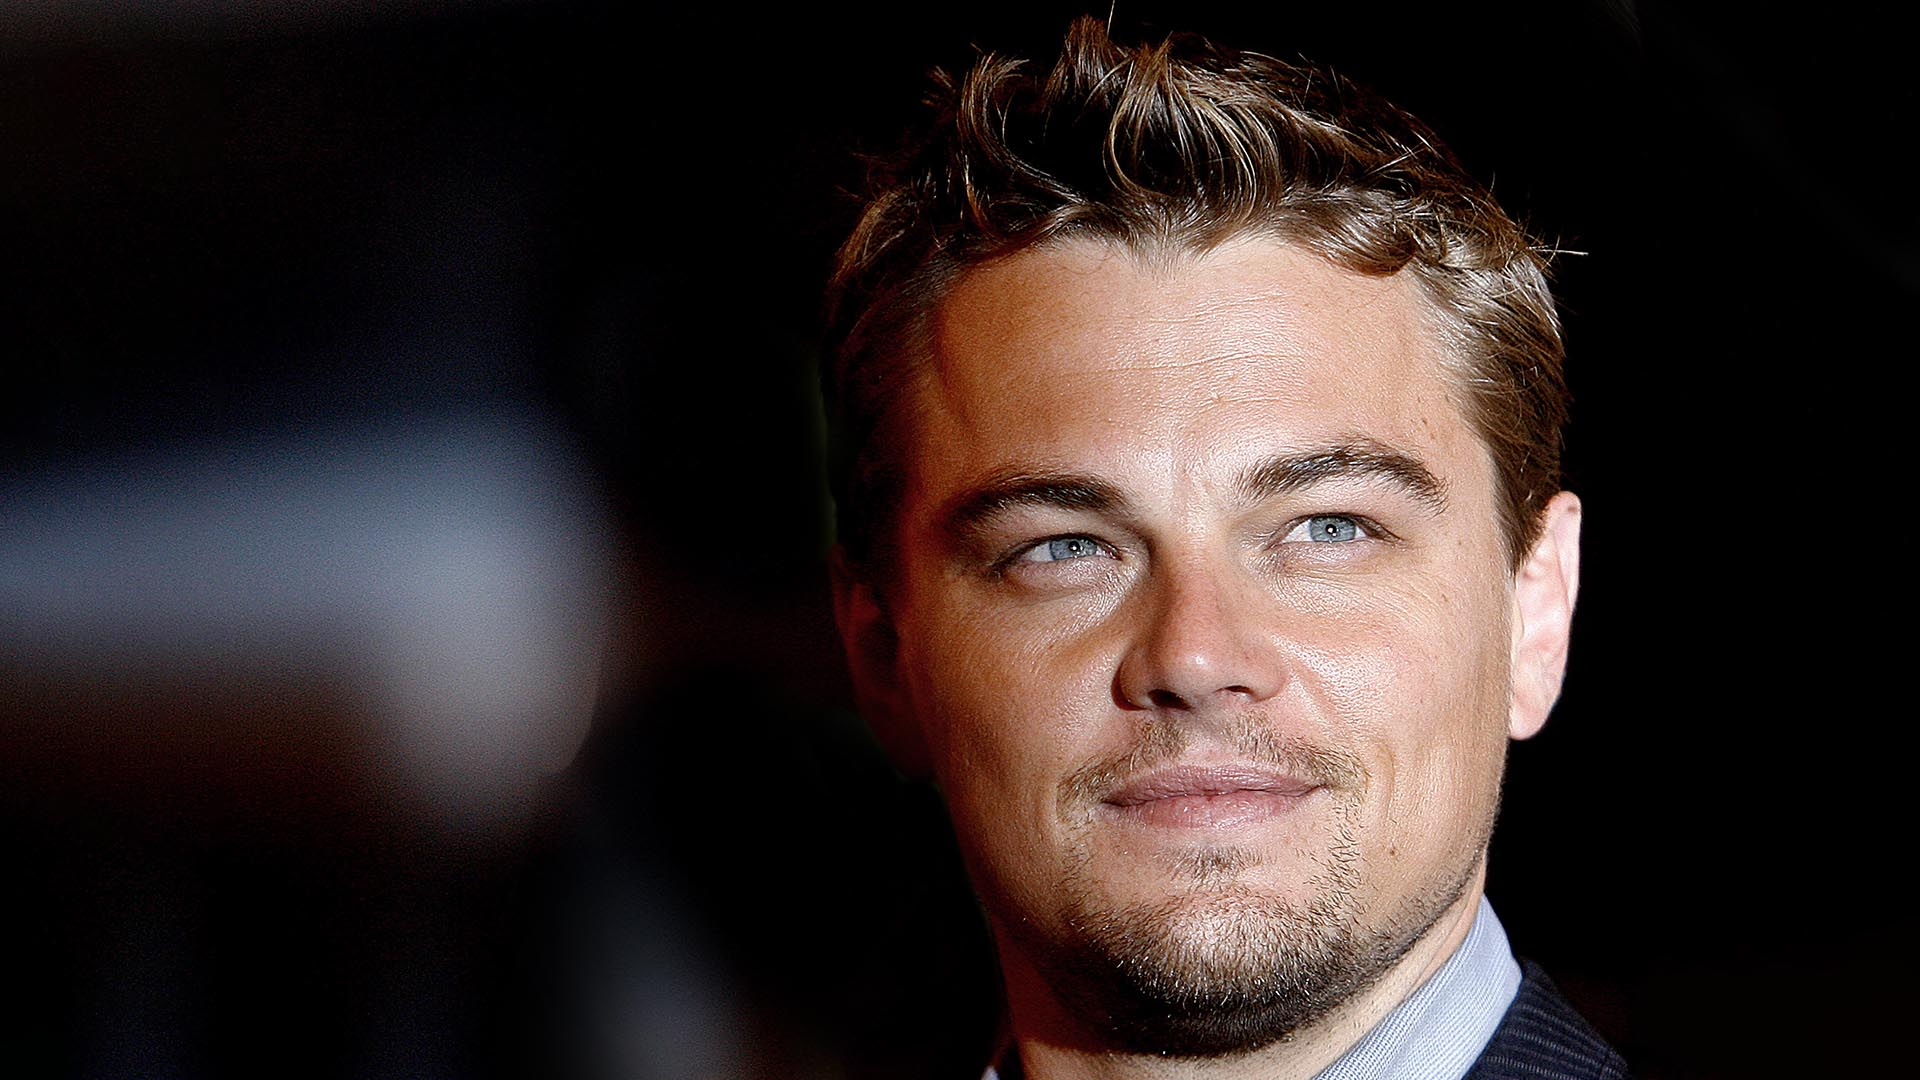 Leonardo DiCaprio attends an industry screening of The Departed in Los Angeles